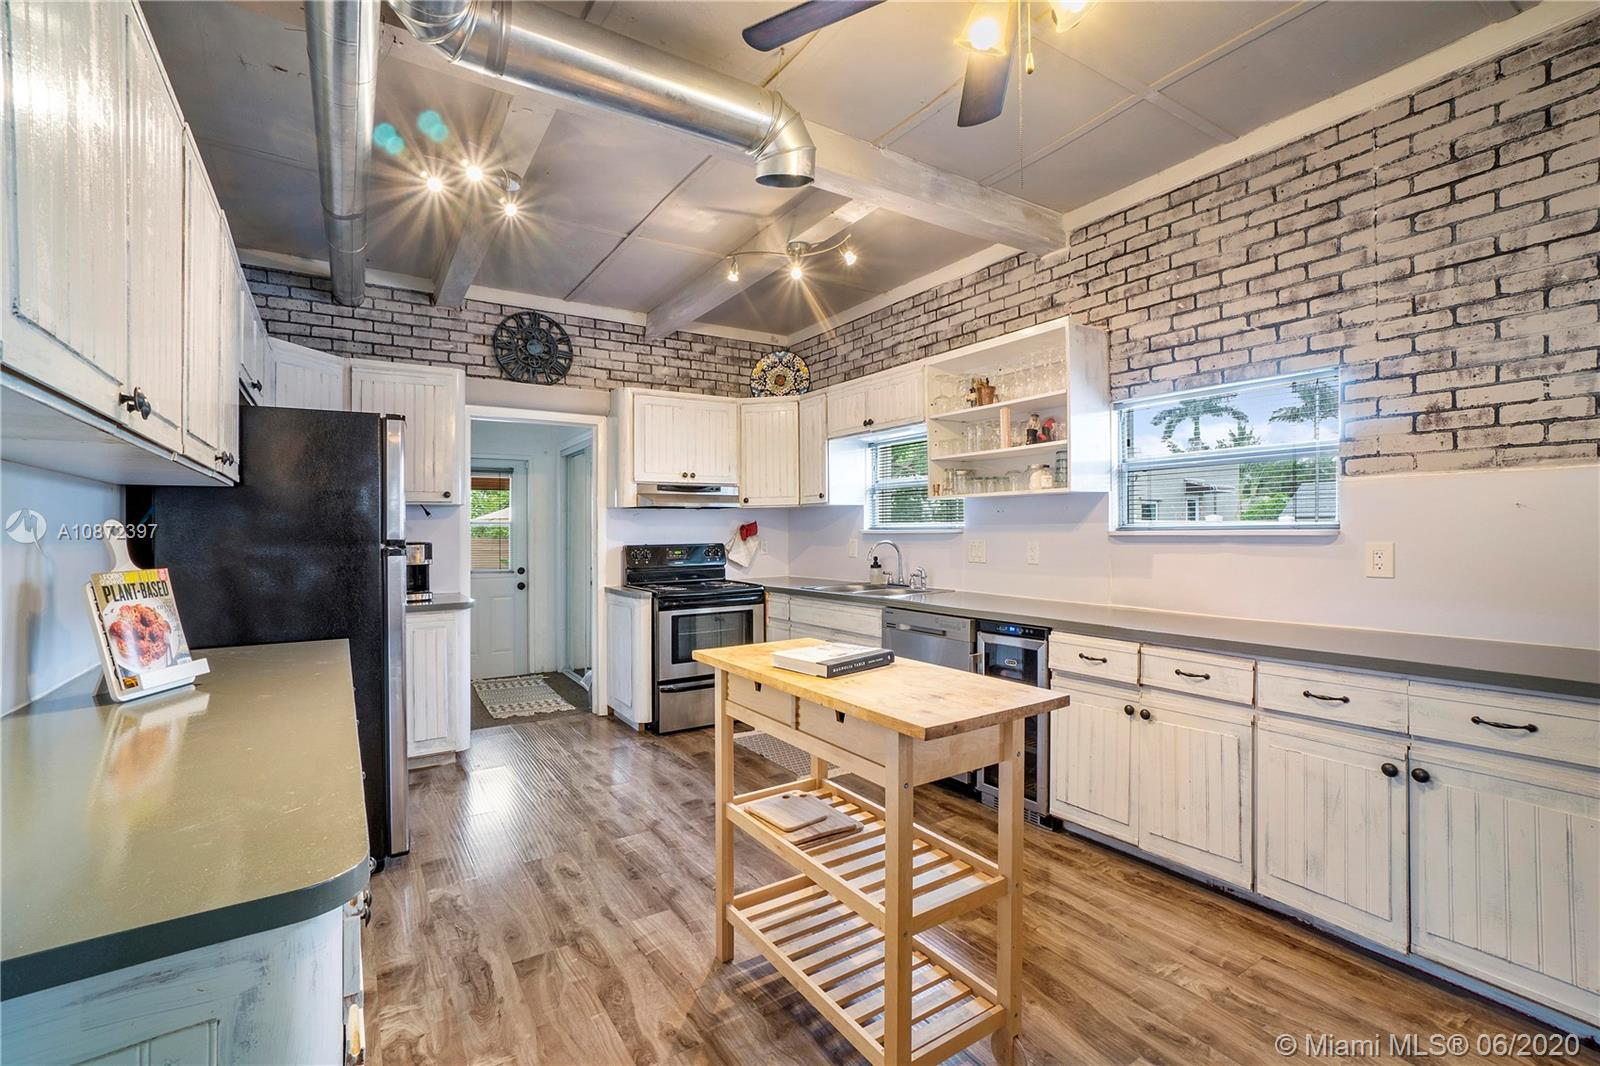 House Realty presents this 3 bed/1.5 bath Dania Beach home with creatively styled industrial modern finishes. The home features a spacious outdoor entertaining space, 2 workshop/storage additional structures. 10 min from the beach, minutes from I-95, 595 and Florida Turnpike.